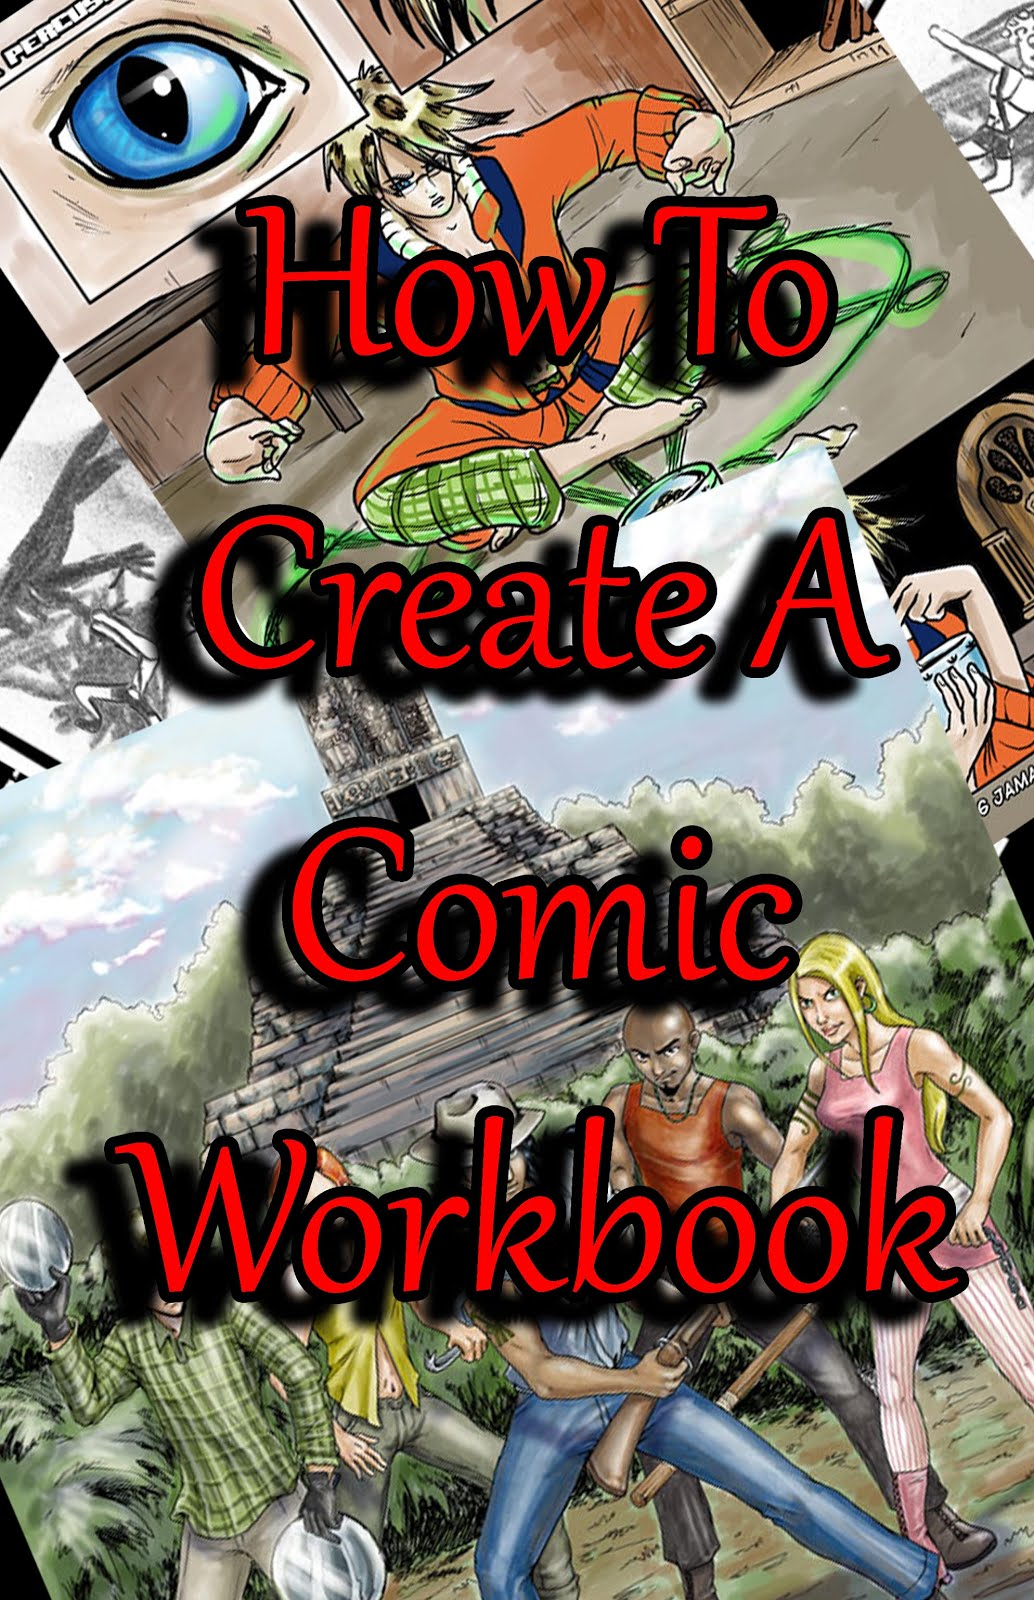 How to Create A Comic Workbook